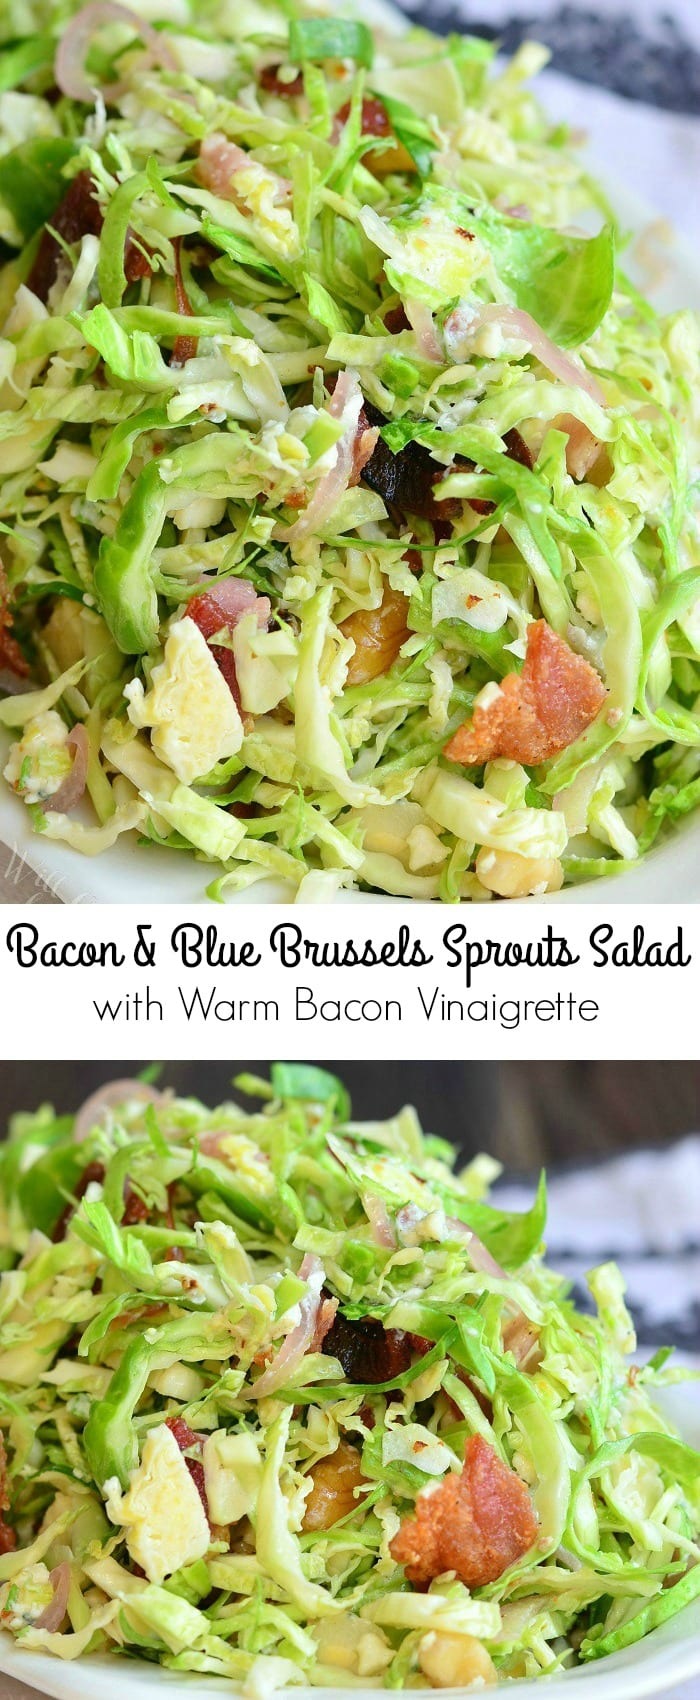 Bacon and Blue Brussels Sprouts Salad with Warm Bacon Vinaigrette | from willcookforsmiles.com #sides #sidedish